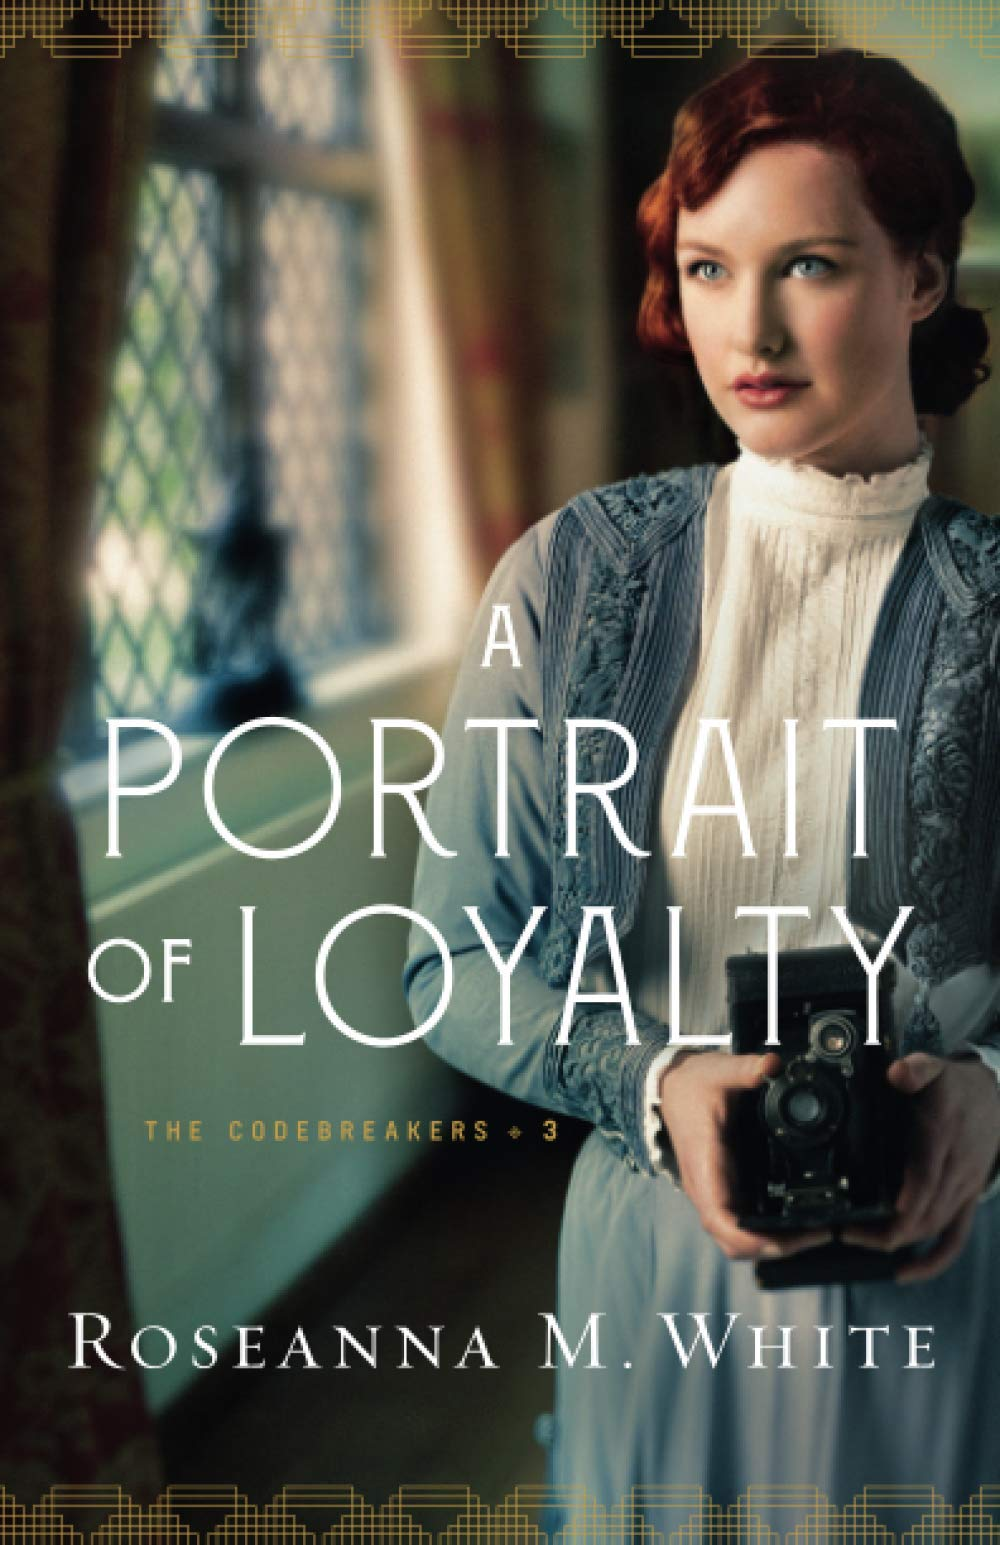 A Portrait of Loyalty by Roseanna M. White {Book Review}